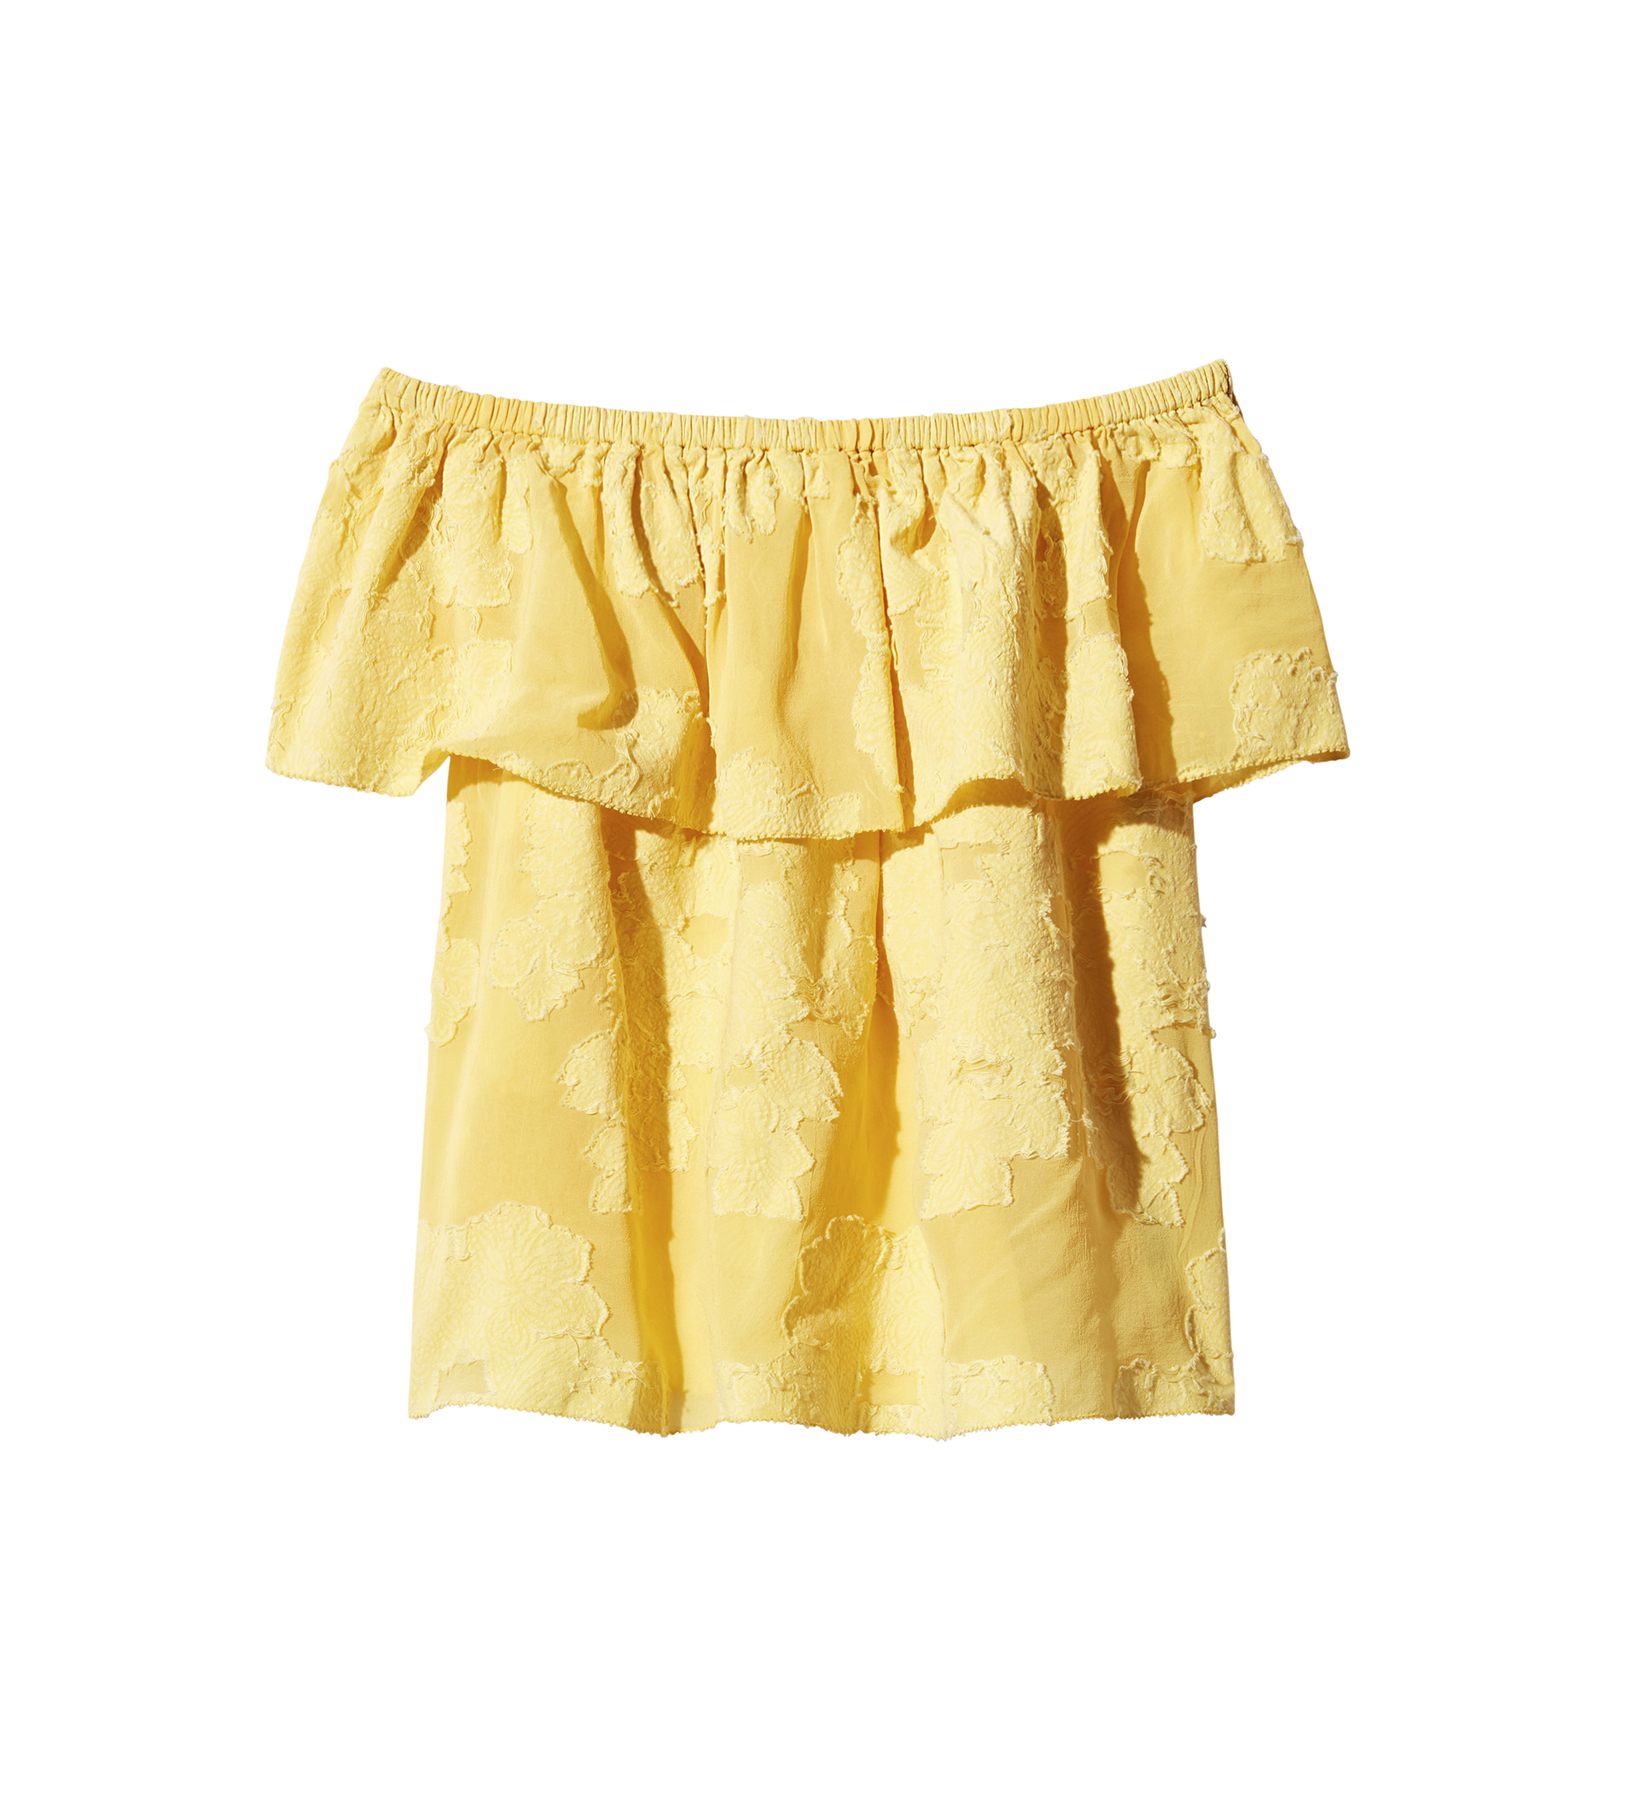 Wilfred Promener Blouse in Misted Yellow